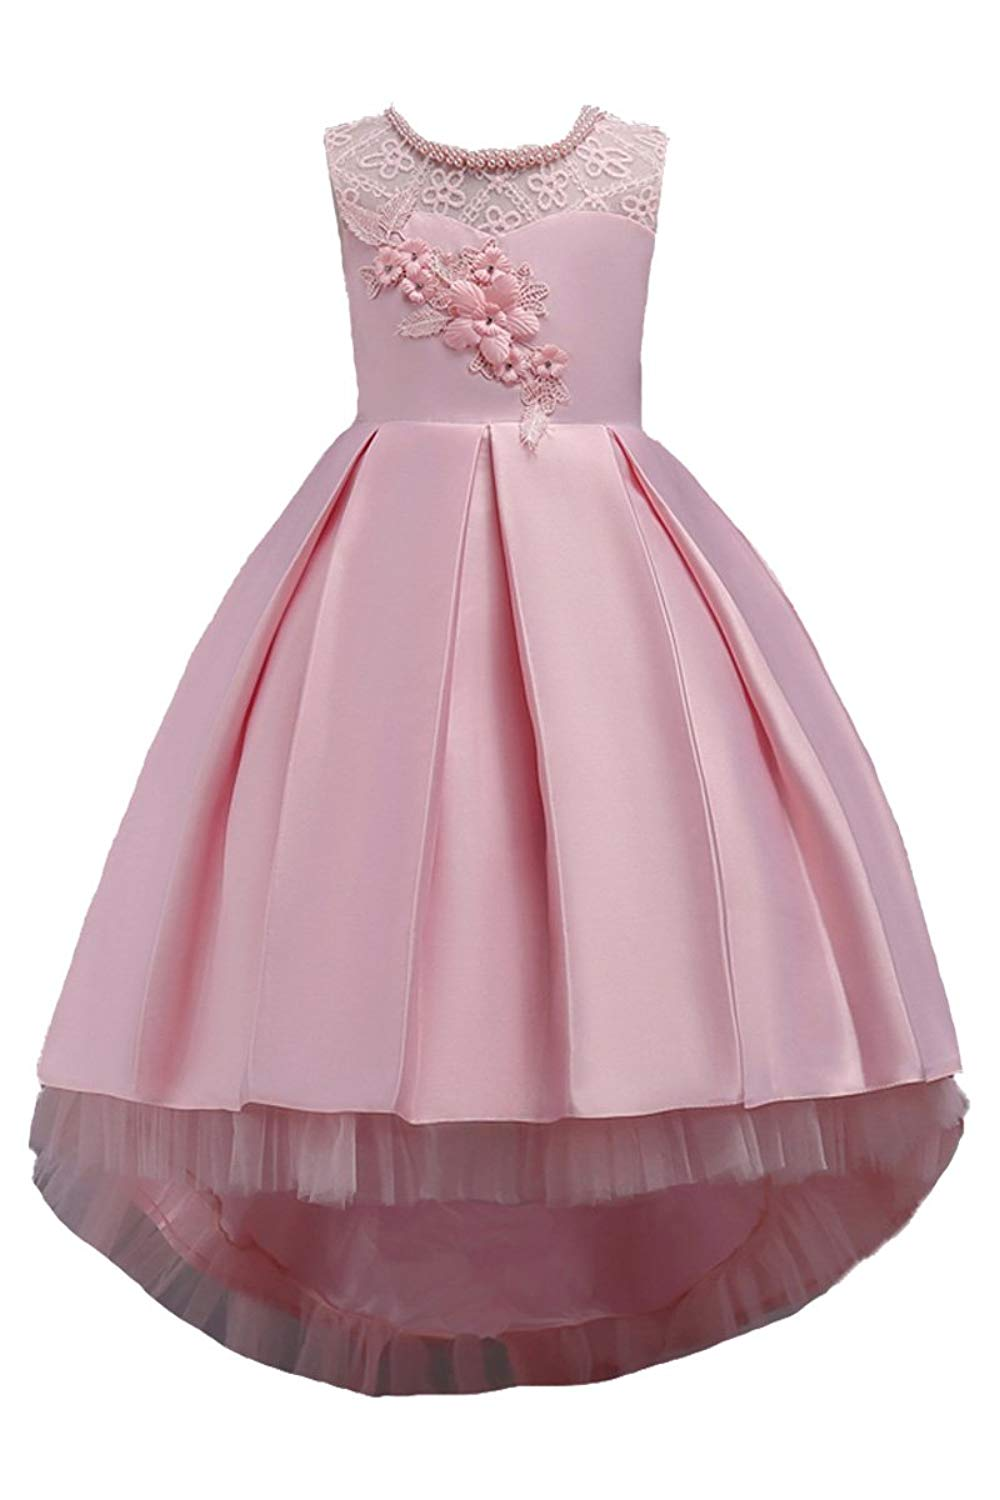 YMING Girls Lace Party Dress Princess Weeding Prom Grow Long Dress with Pearl